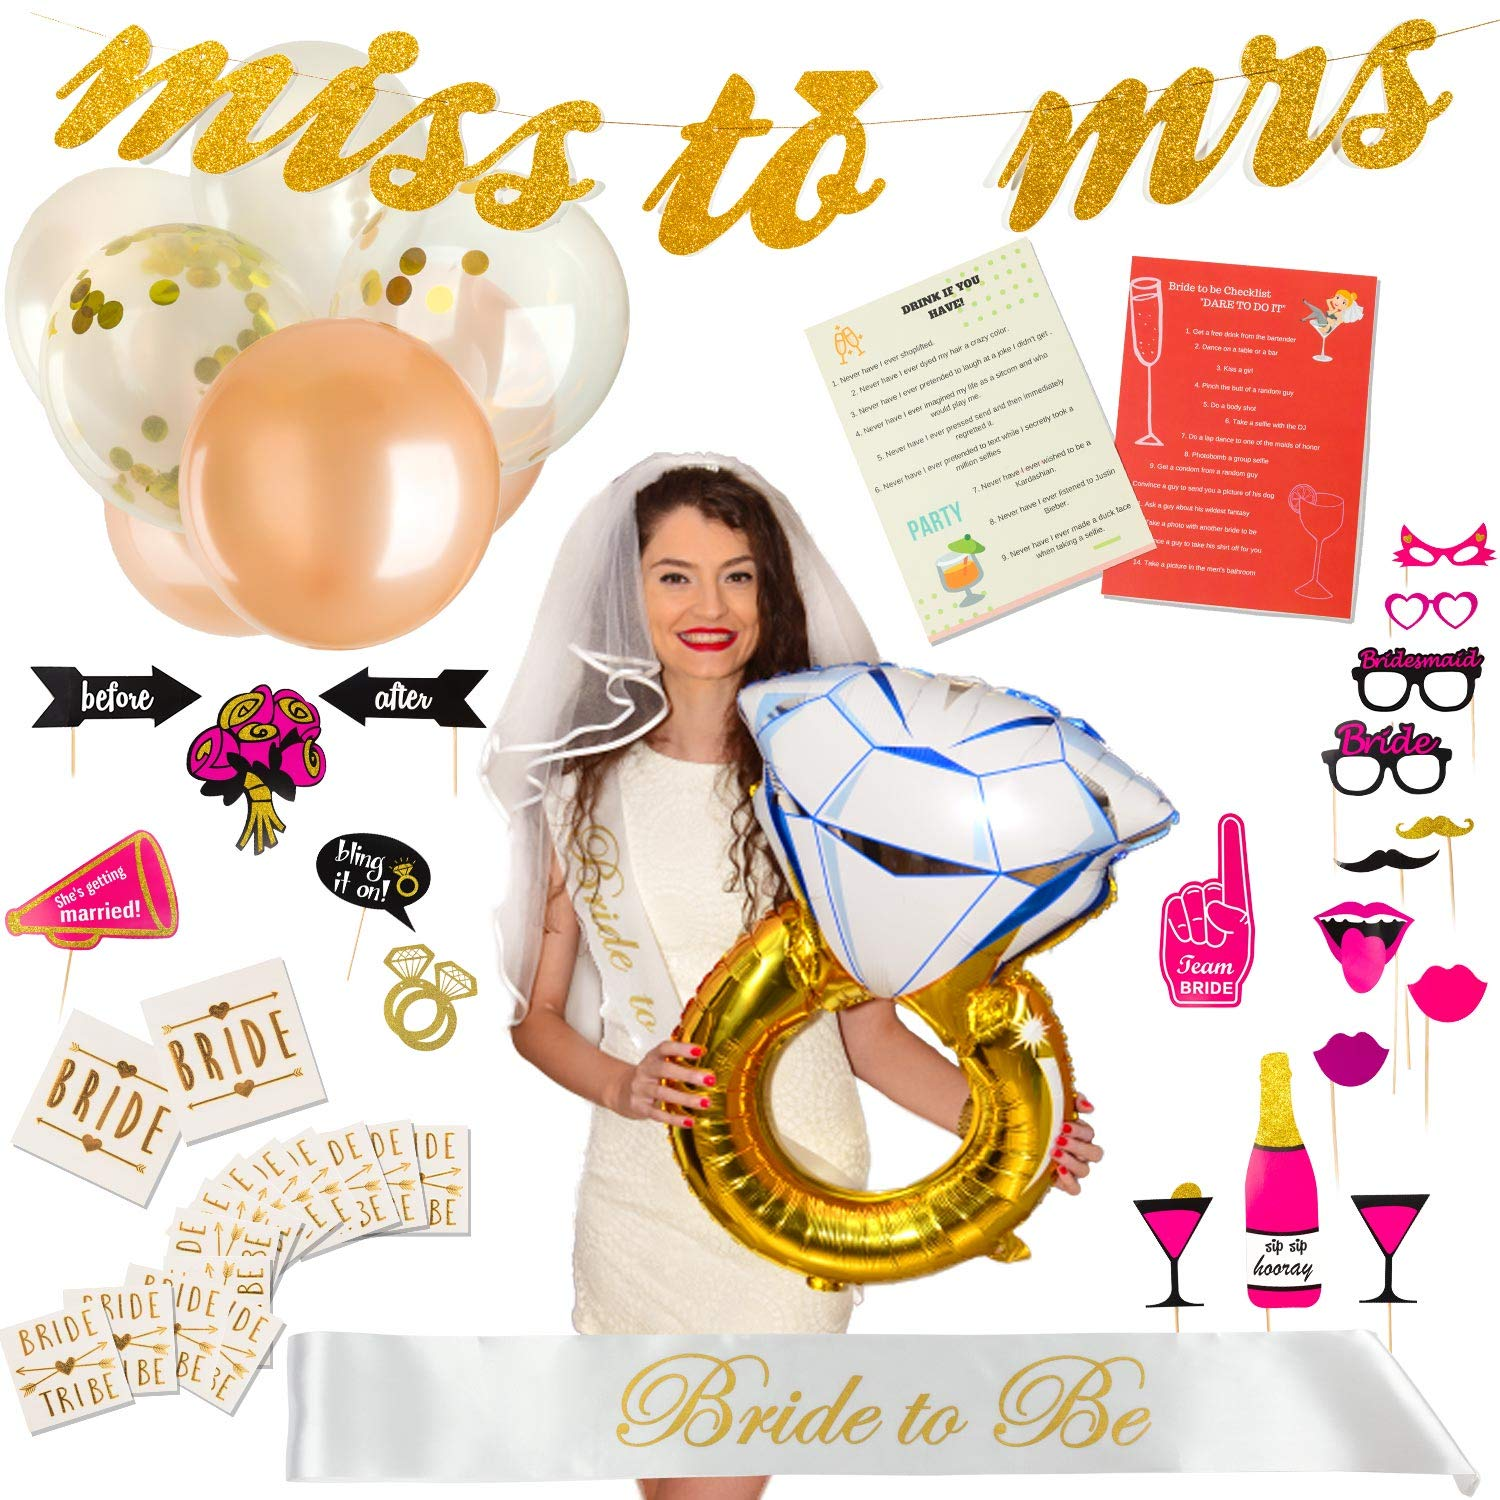 "Exclusive Bachelorette Party Decorations - Bridal Shower Supplies Kit with ""Bride to Be"" Sash and Satin Veil – Includes Bridesmaid Games, 12 Tattoos, 6 Balloons and 20 Photo Booth Props – Great GlFT by Lorelai's Decorations"